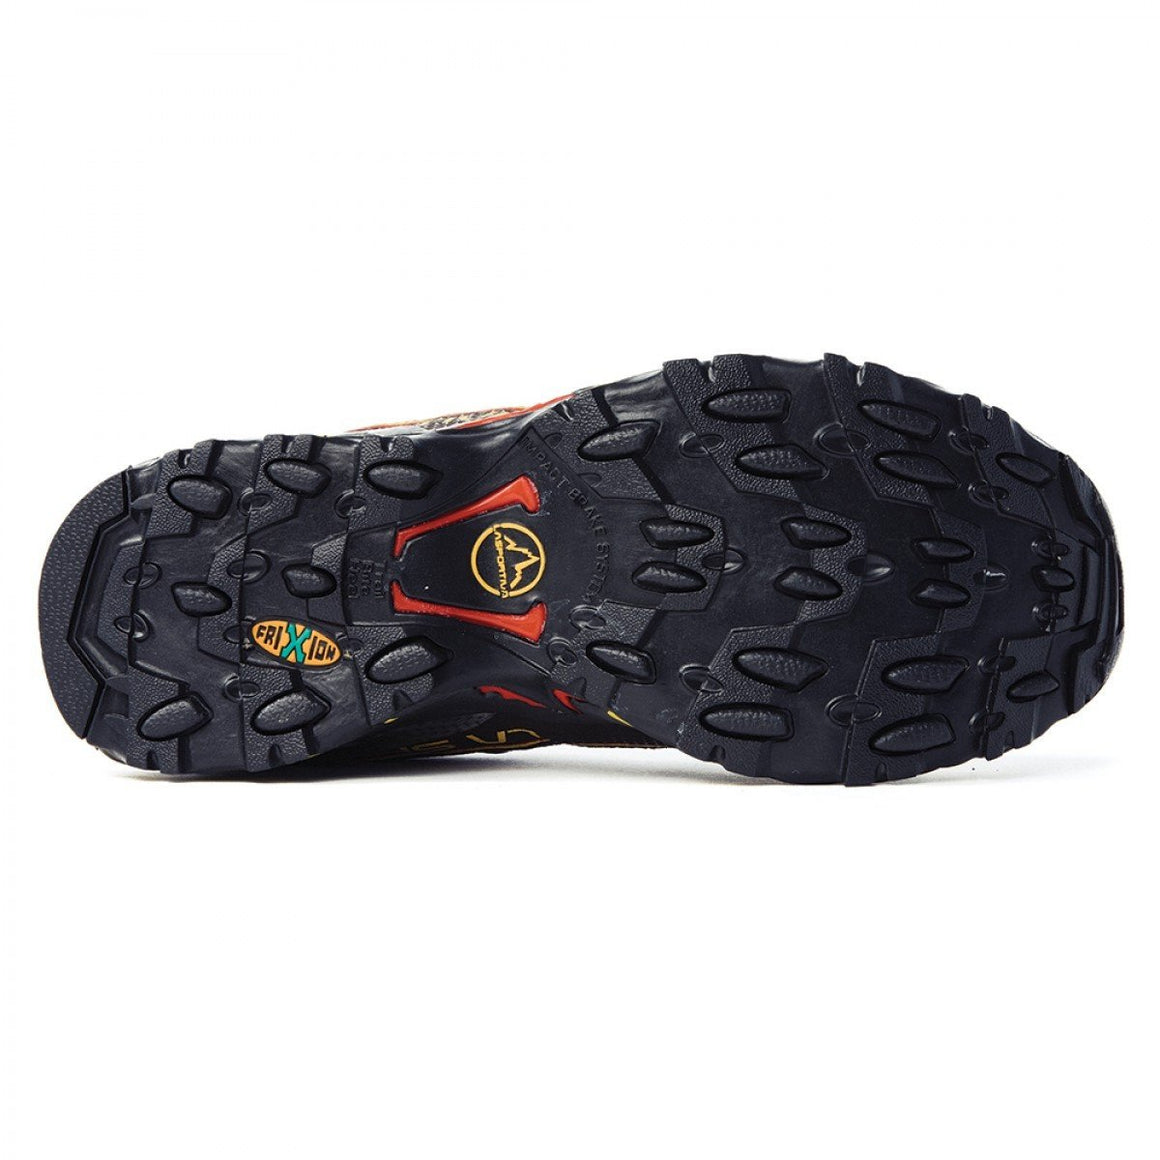 La Sportiva Ultra Raptor running shoe, sole view